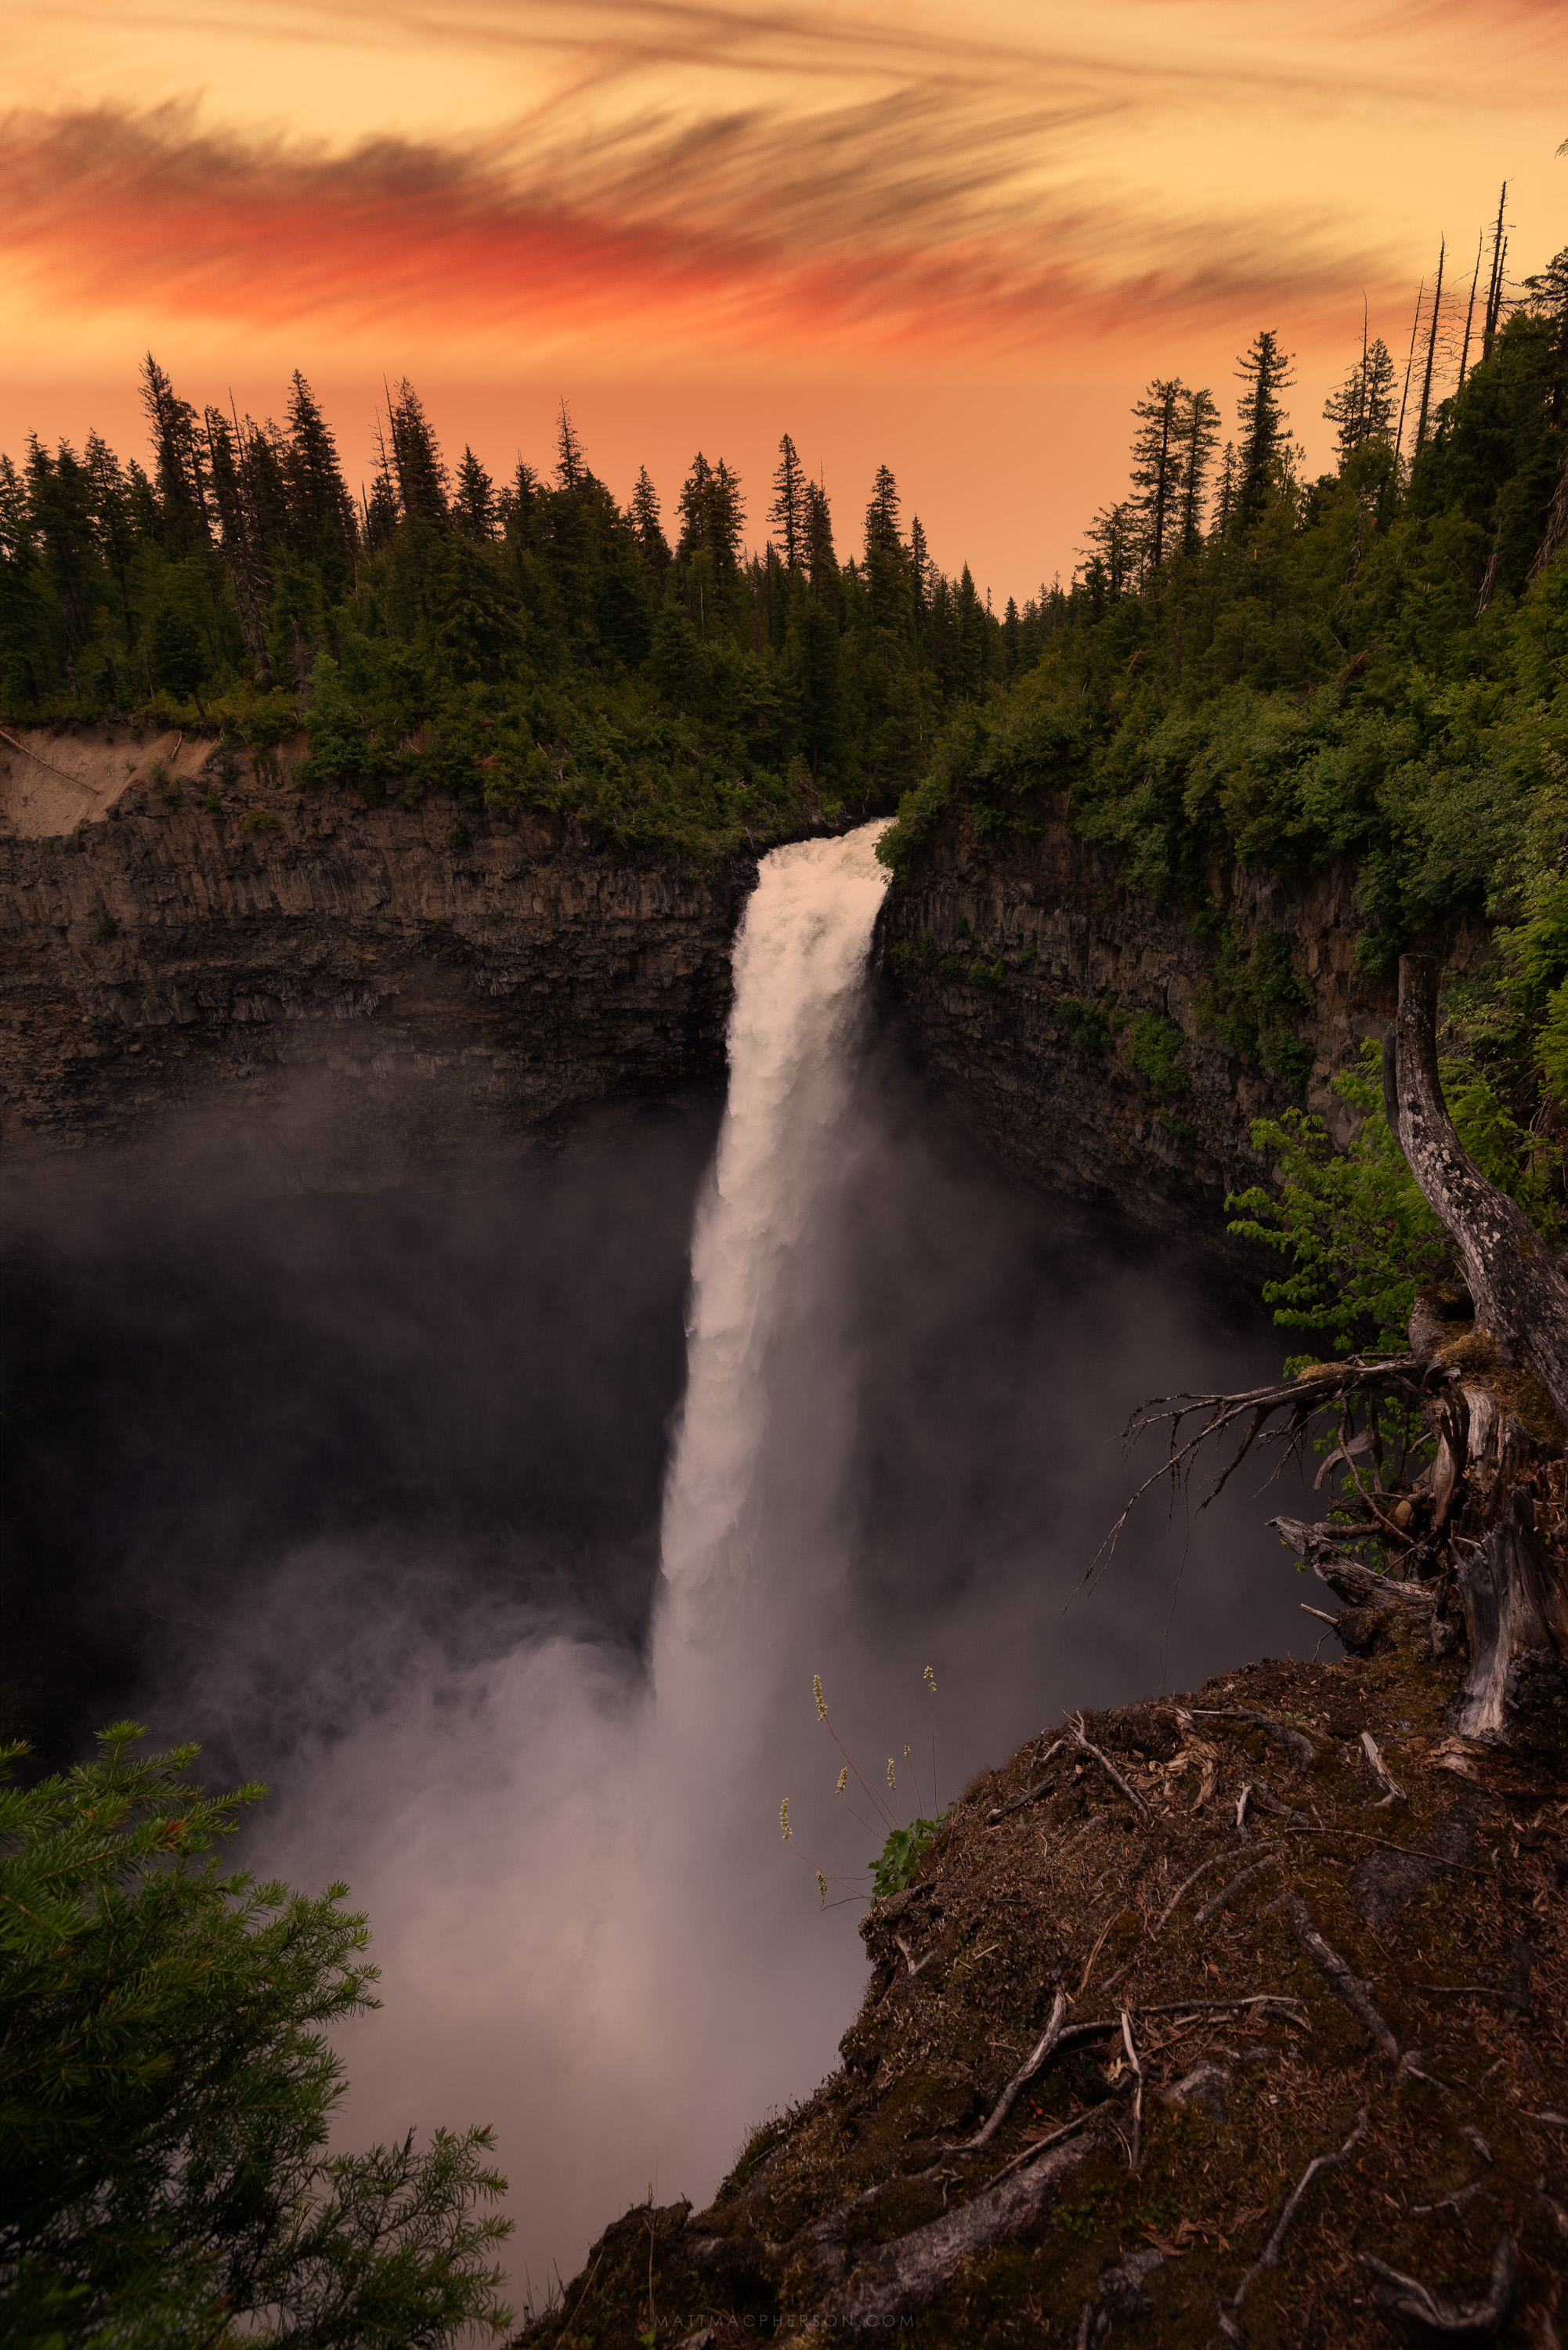 The loudest waterfall I've ever encountered... Helmcken Falls, British Columbia [OC][3000x2000]